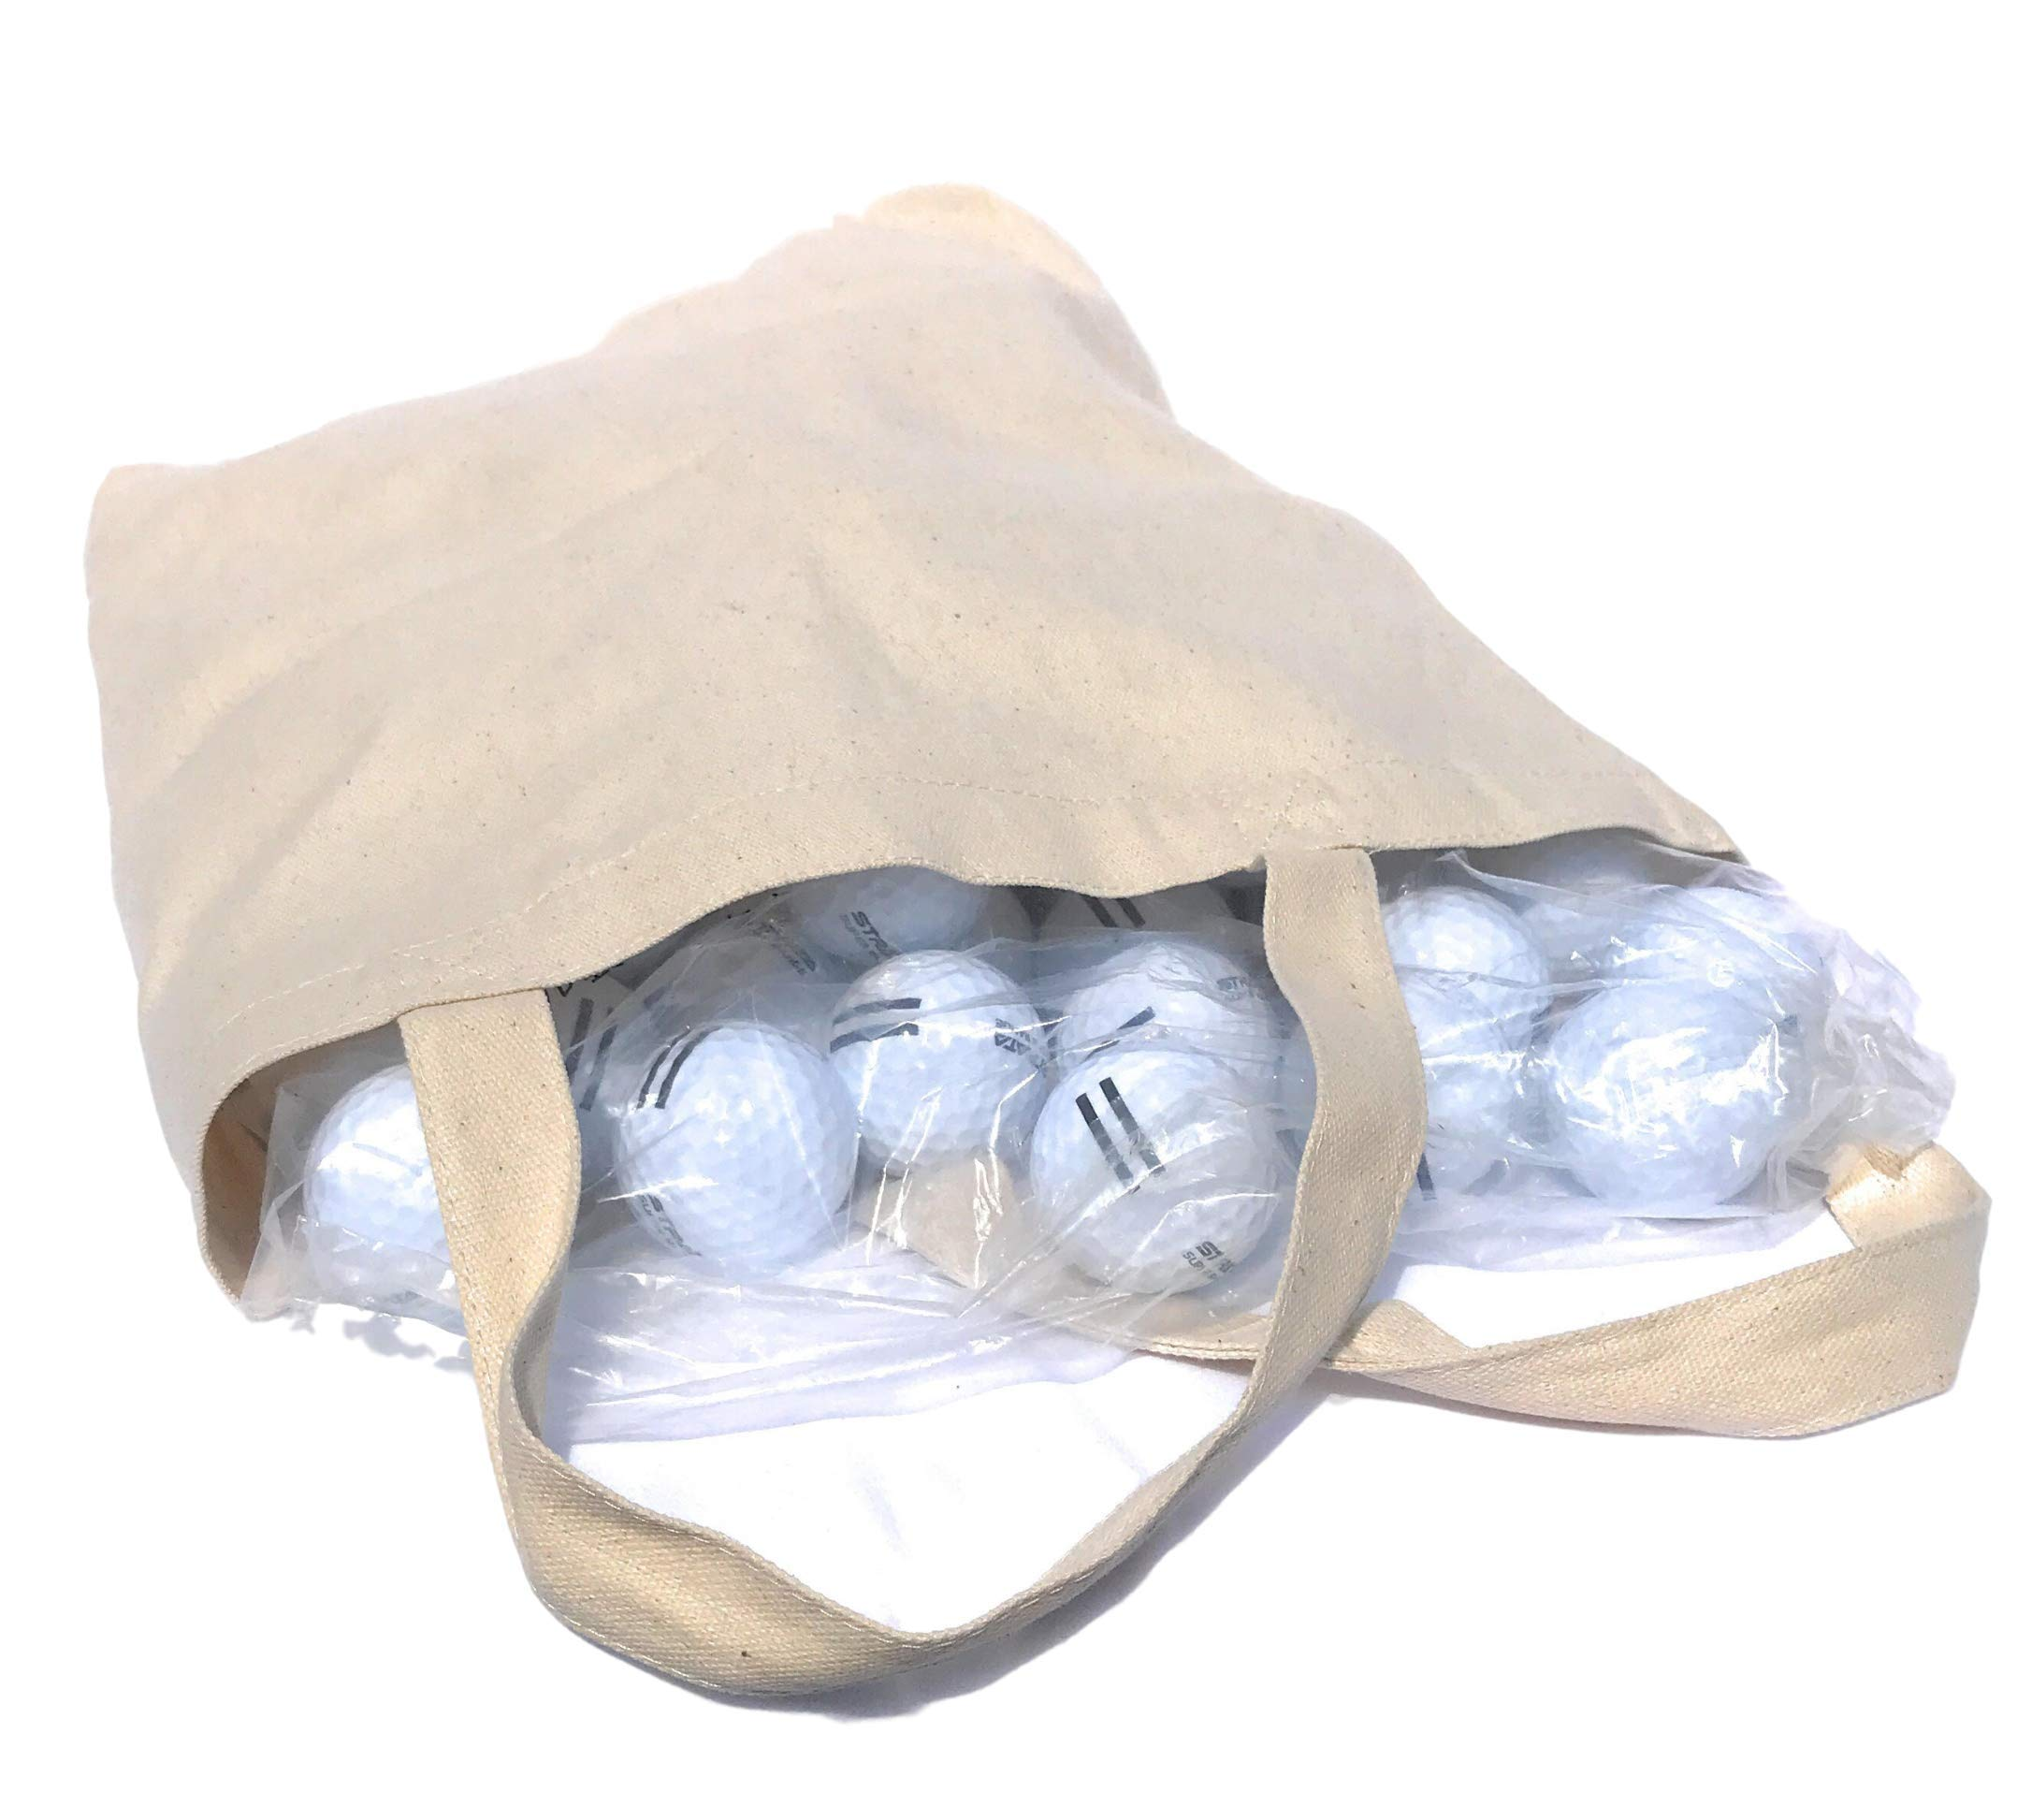 Strata Golf Balls, 100 New Super Range White with Black Stripes Model 4027, in Reusable Canvas Carry Bag by Strata